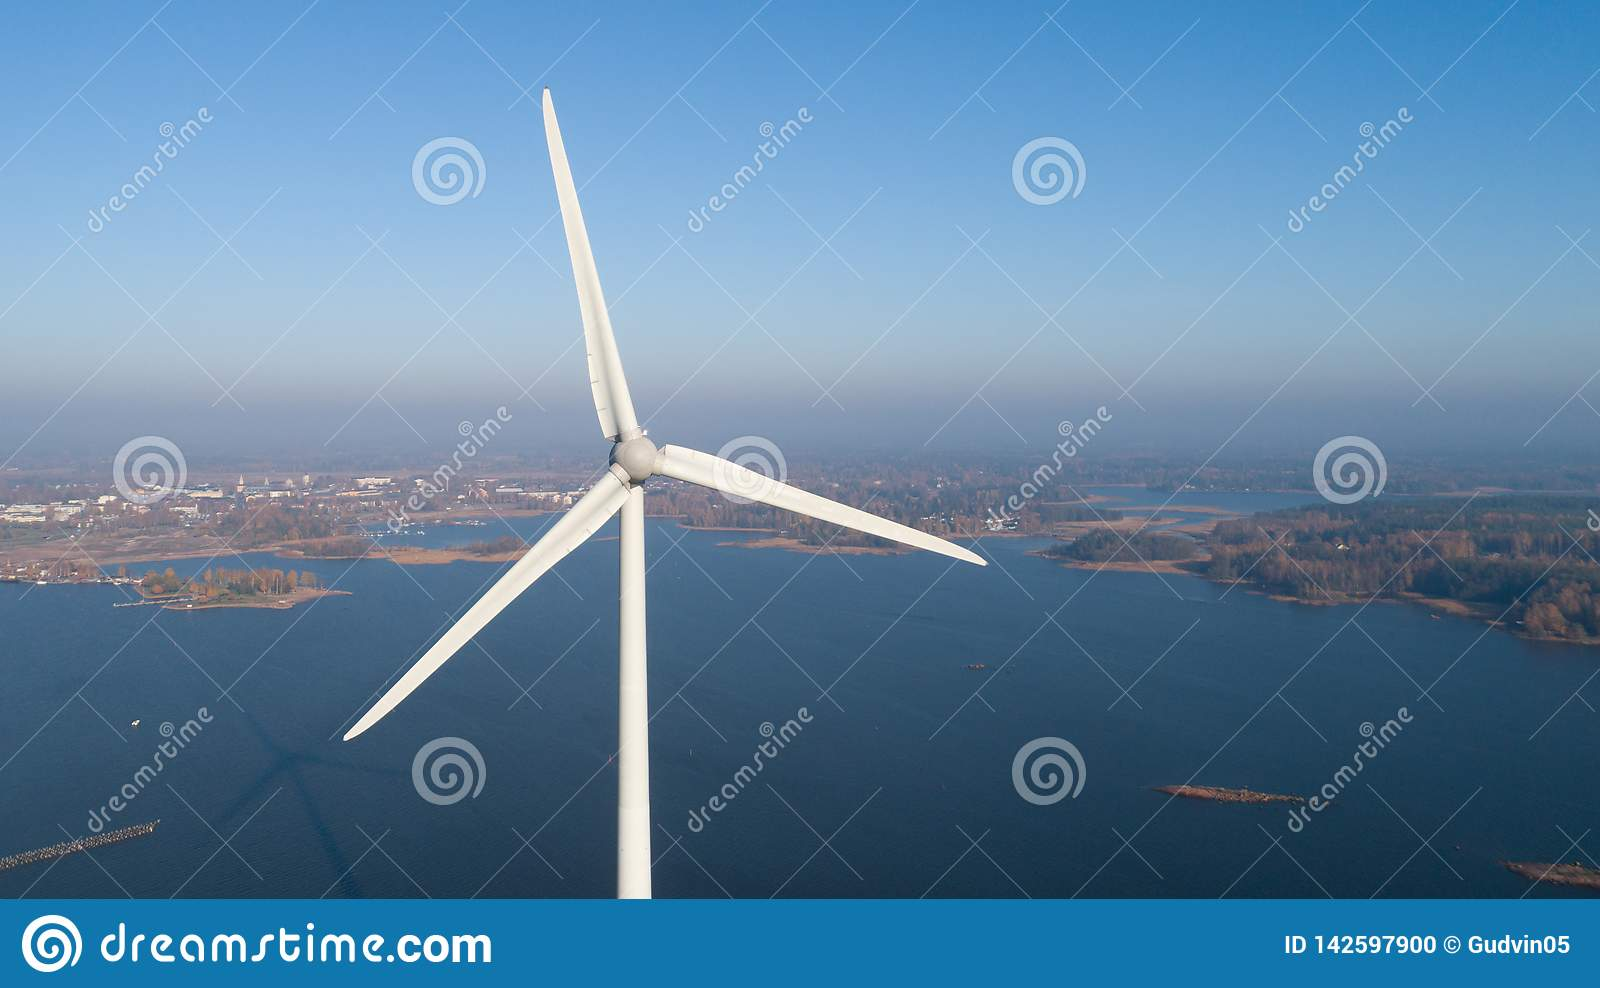 Aerial photo of wind turbine. Top view